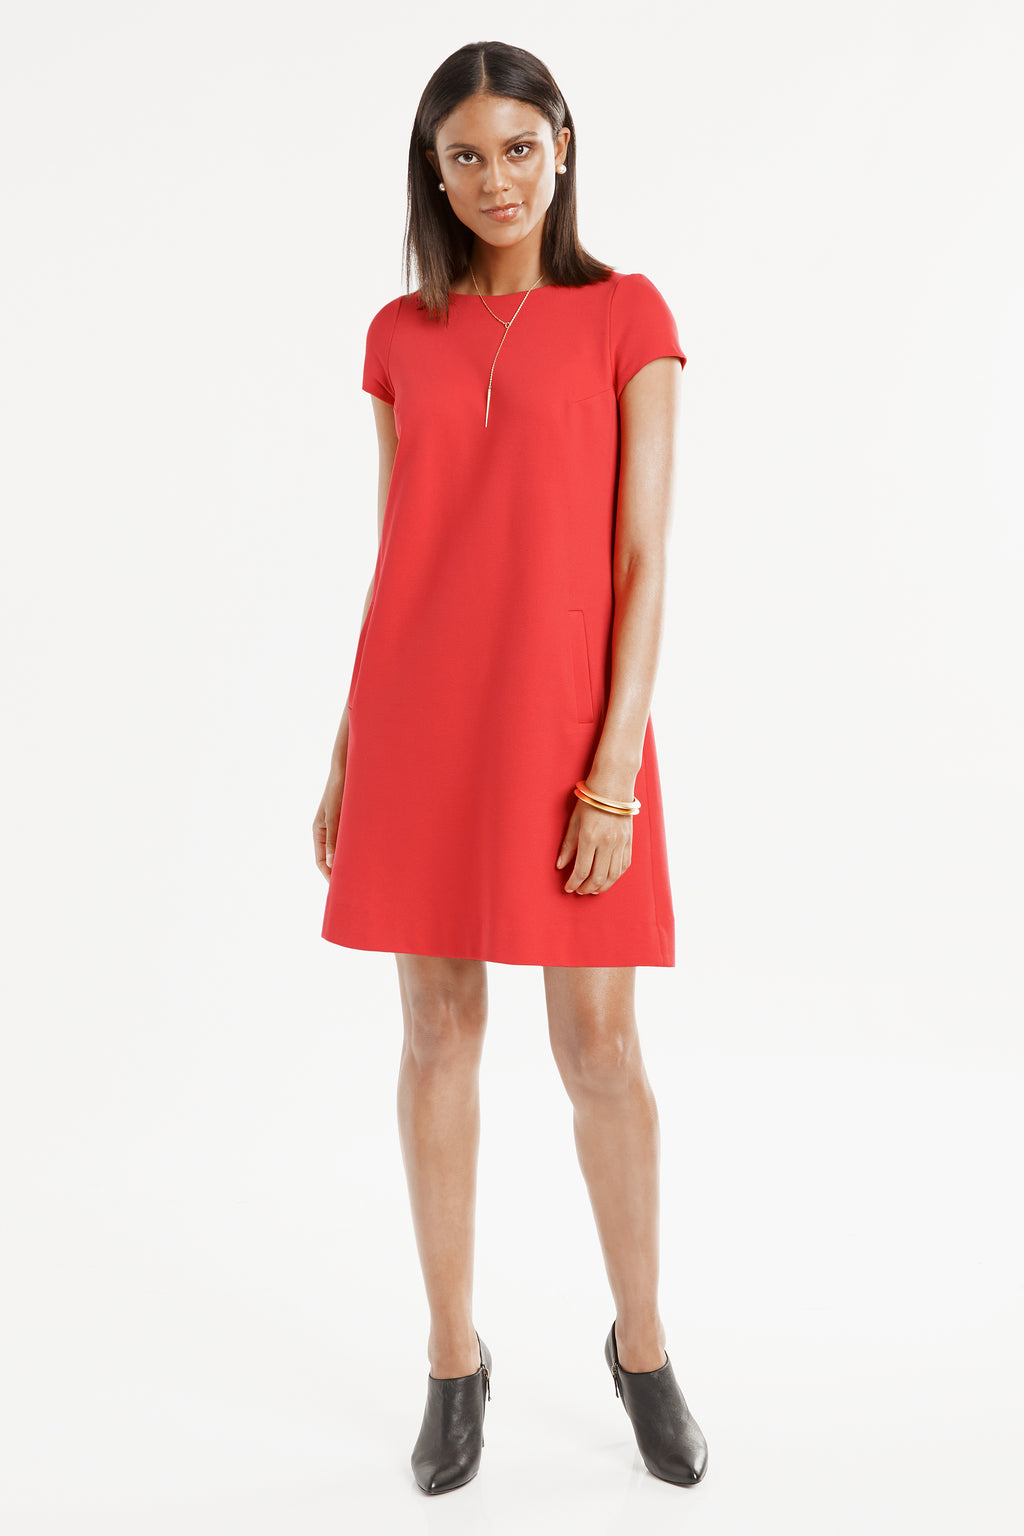 Short Sleeve Knit A-Line Dress in red